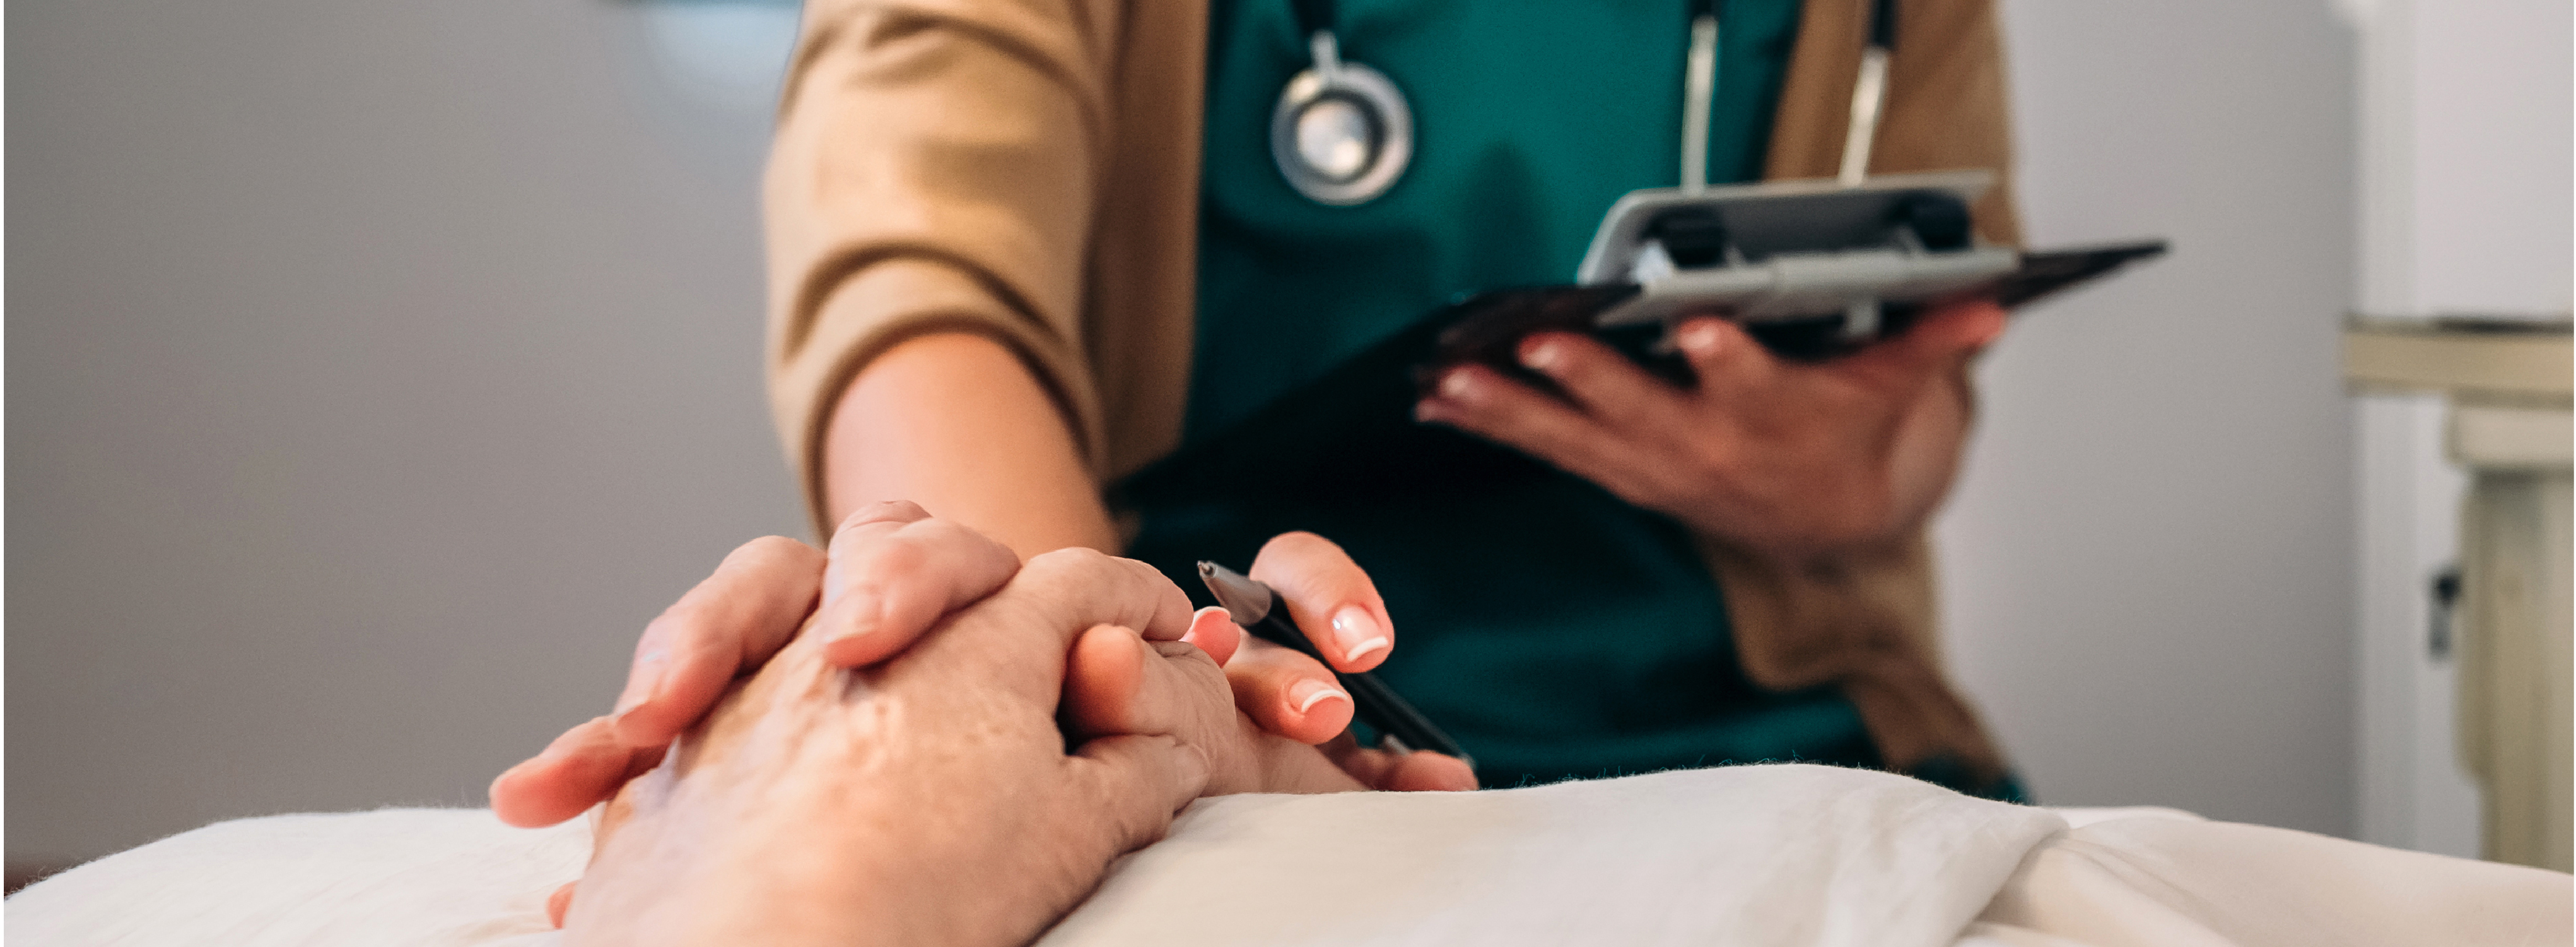 abstract photo of a nurse and patient holding hands